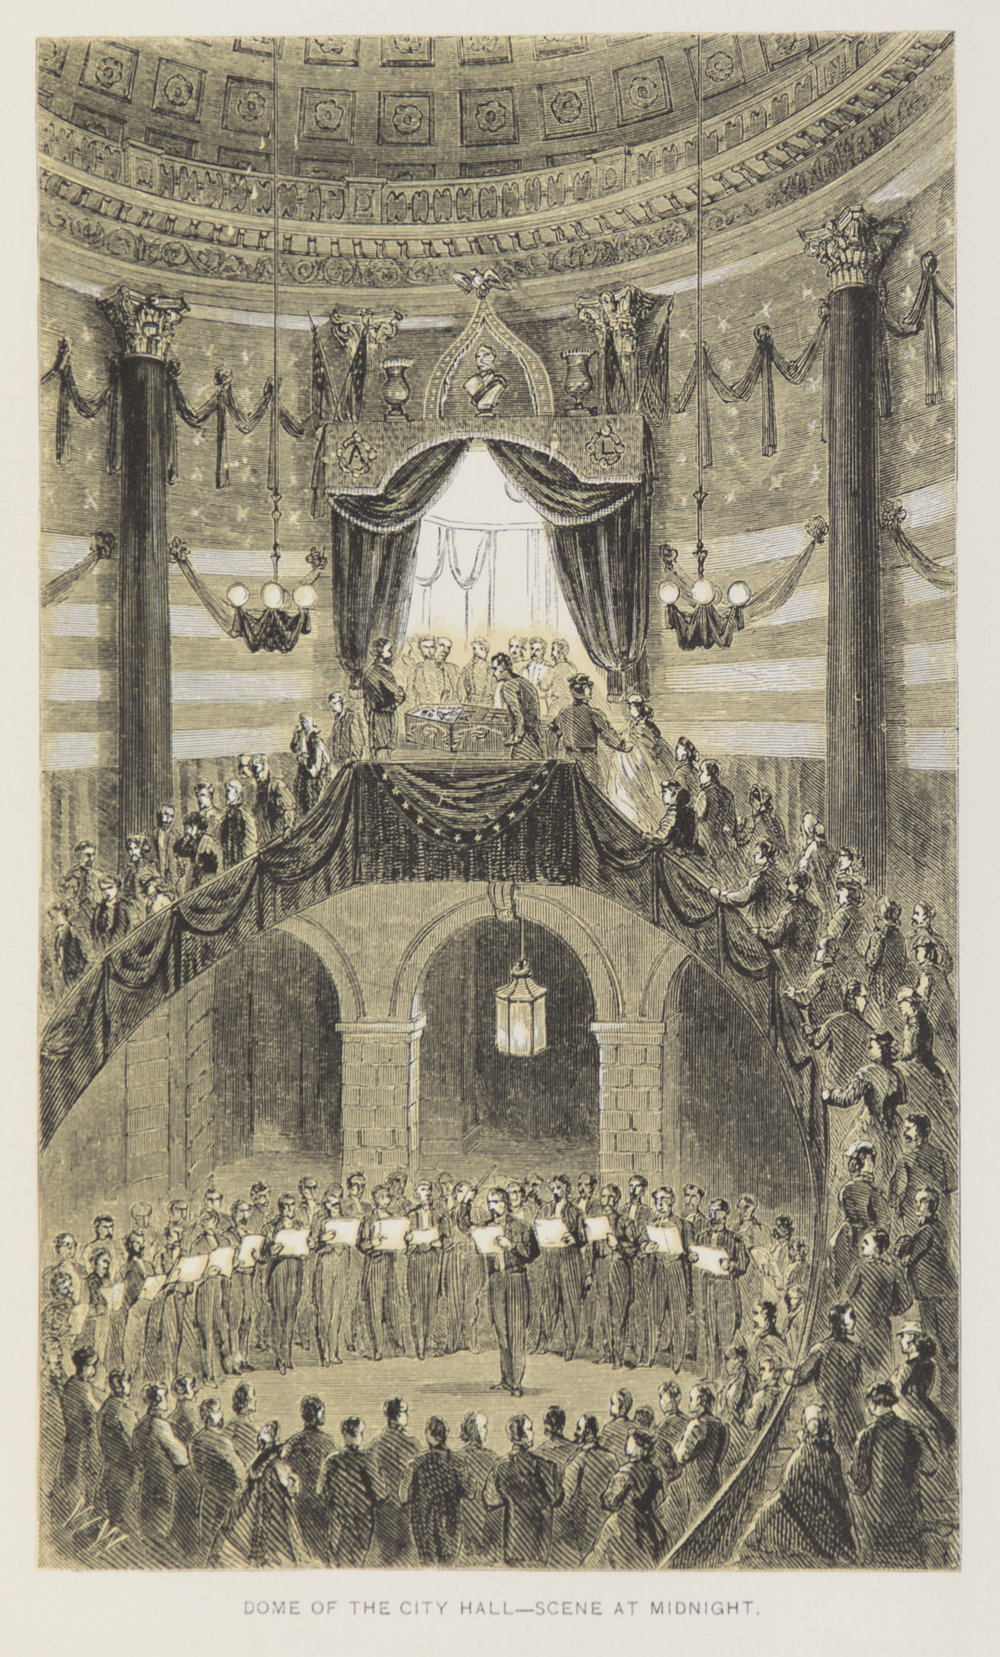 Lincoln's body lay in an open casket in the City Hall rotunda overnight and was seen by over 100,000 New Yorkers. On the 25th, after a funeral procession up Broadway, his body departed by train for Springfield, Illinois.  The Obsequies of Abraham Lincoln , NYC Municipal Library.